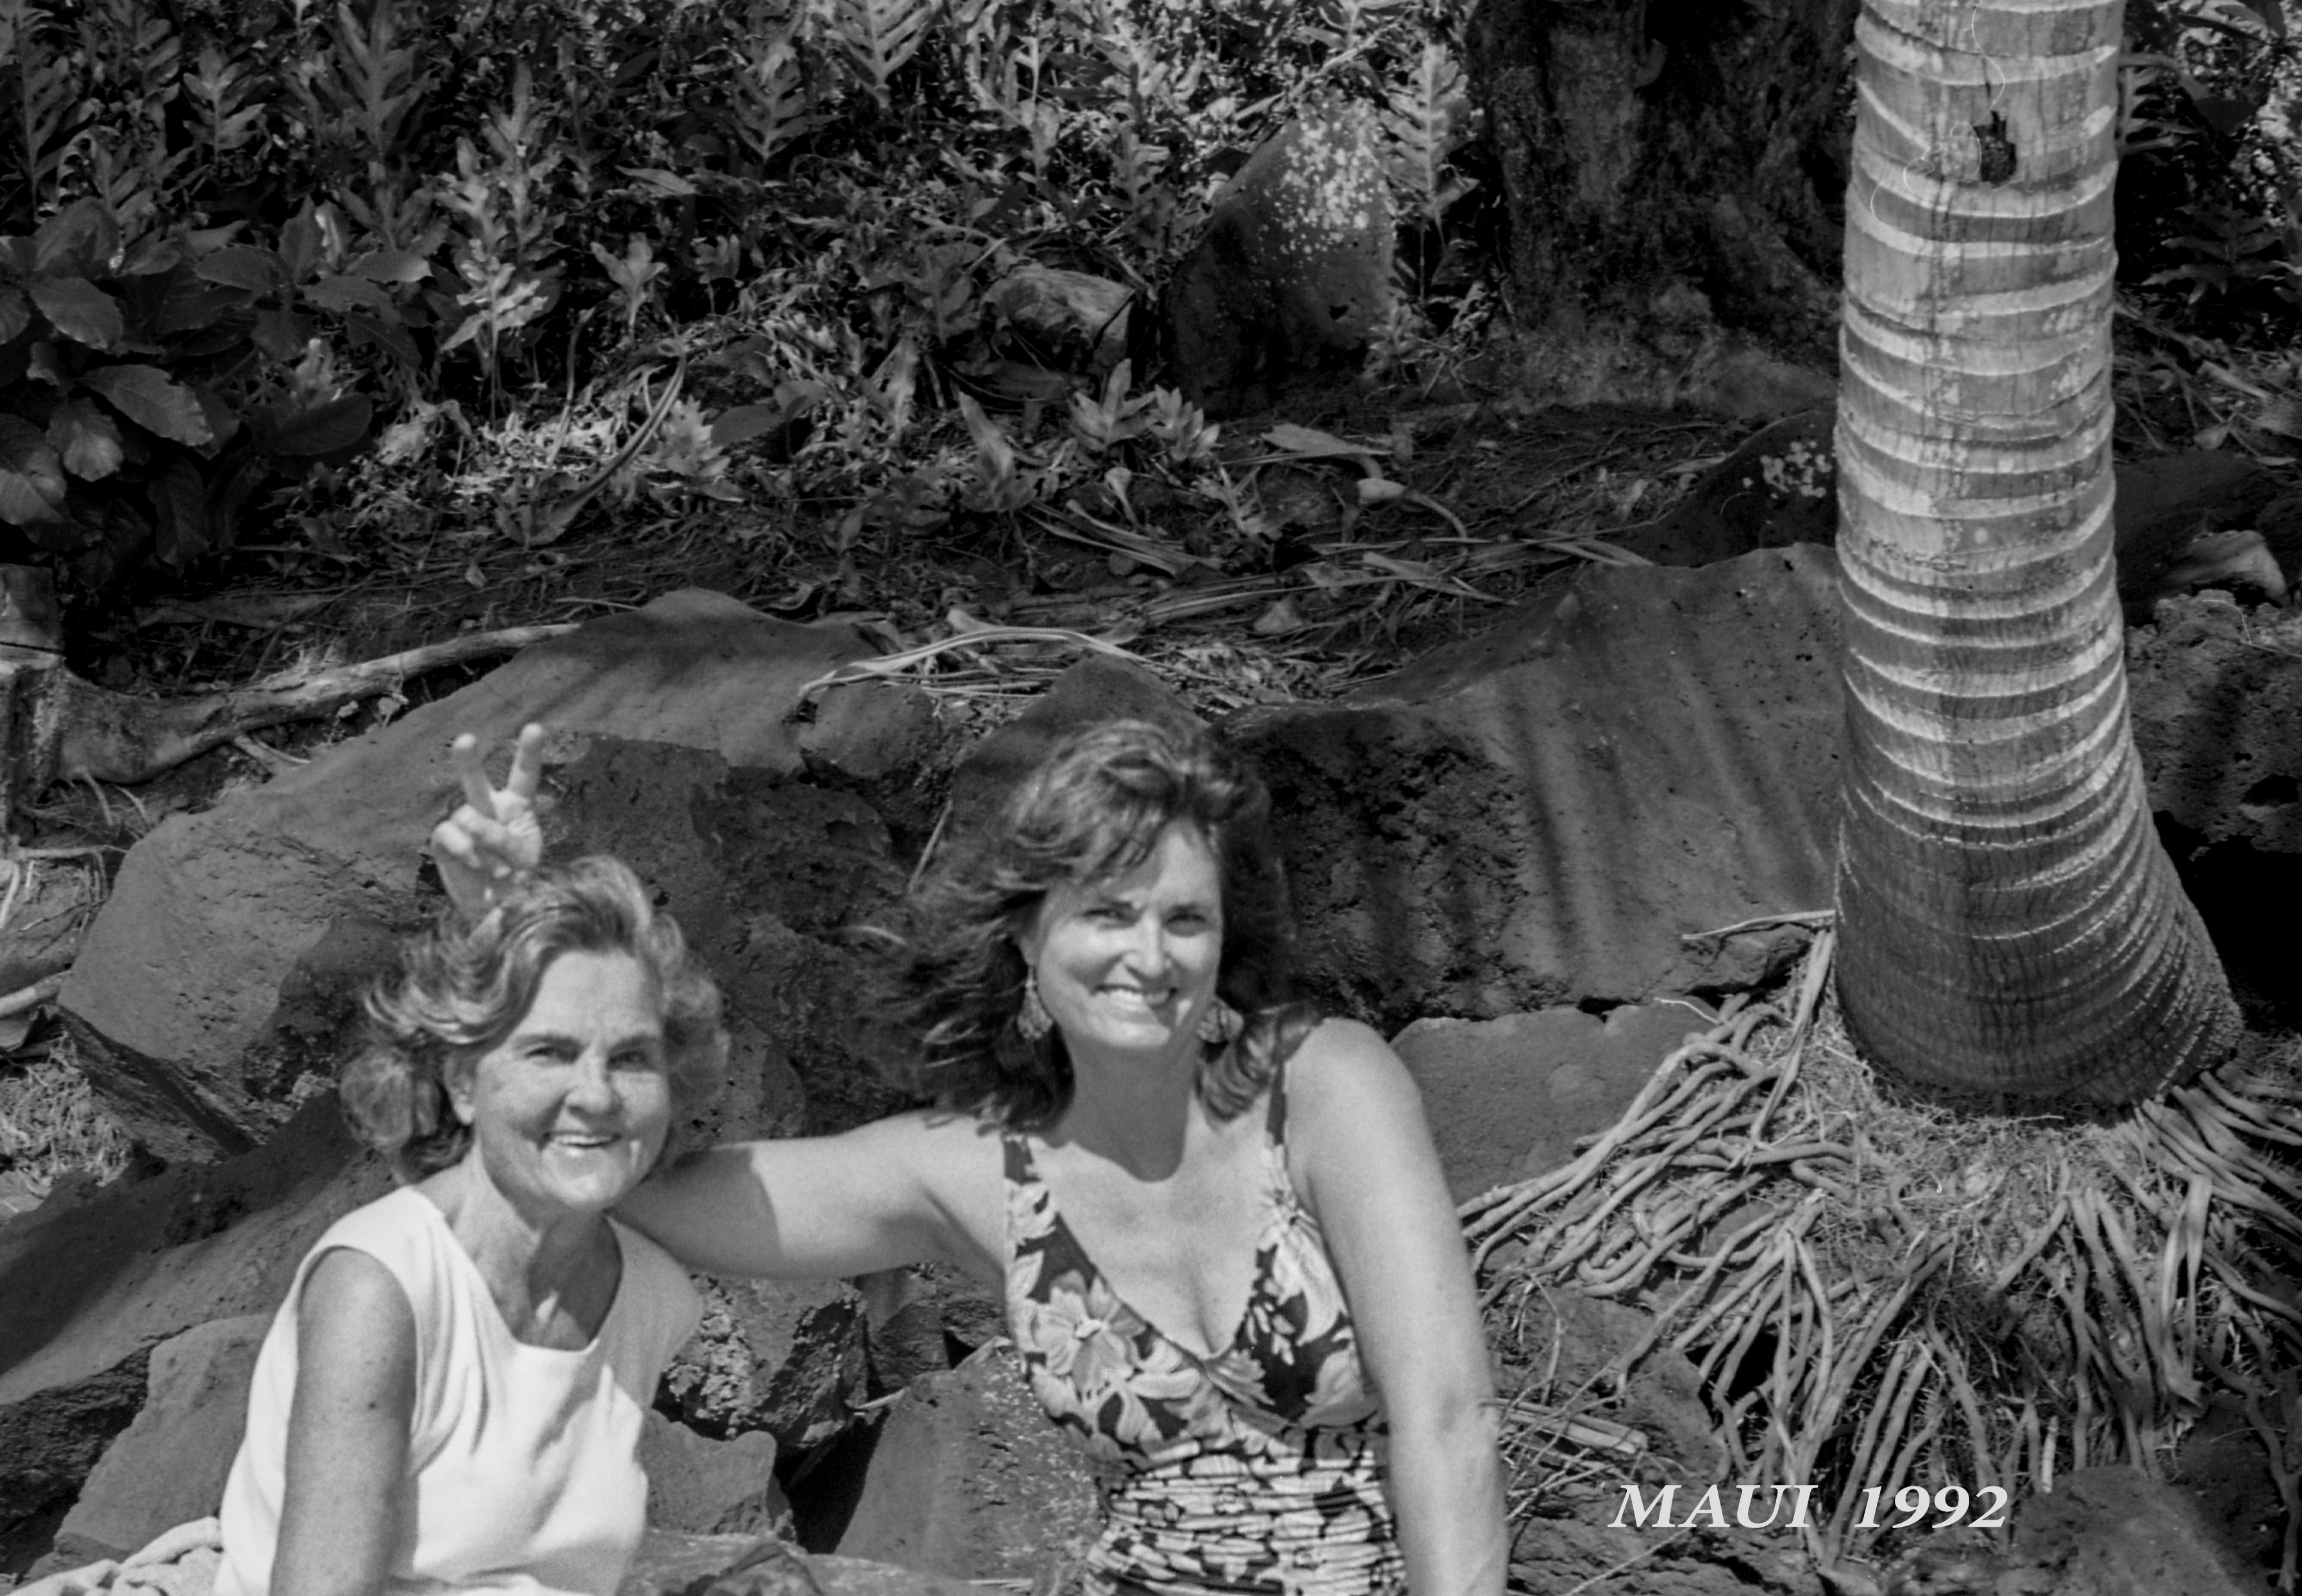 Marie Louise Gartside Bates and Carolyn Bates in Maui